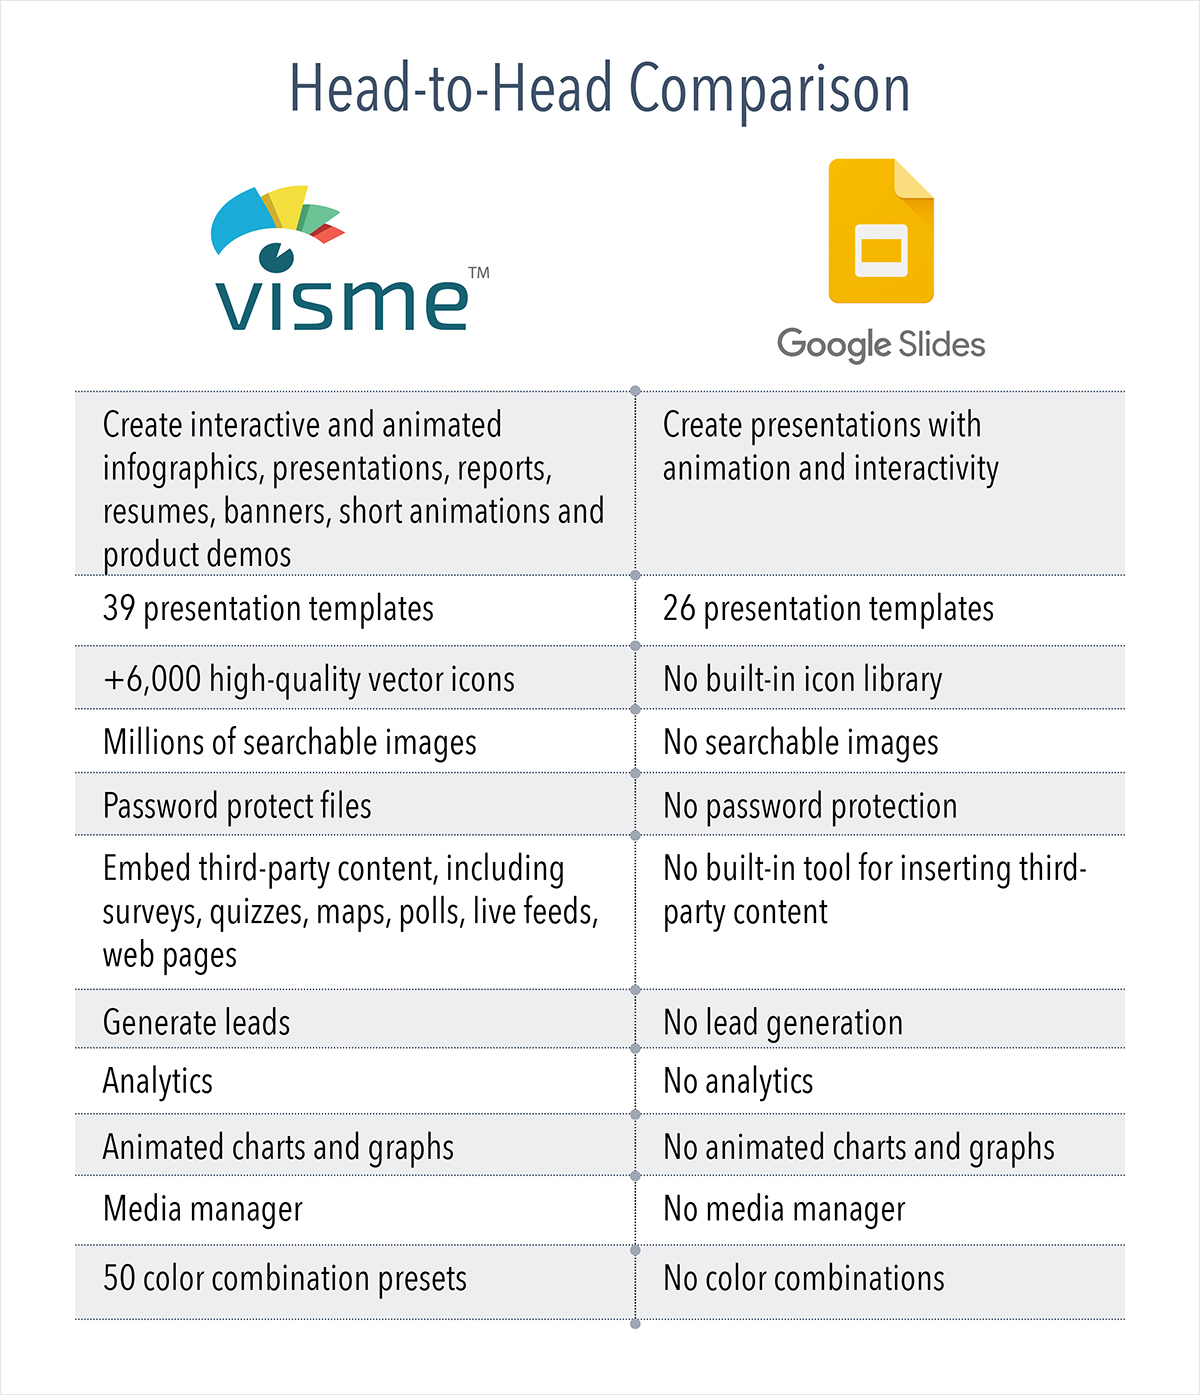 comparison Visme Slides